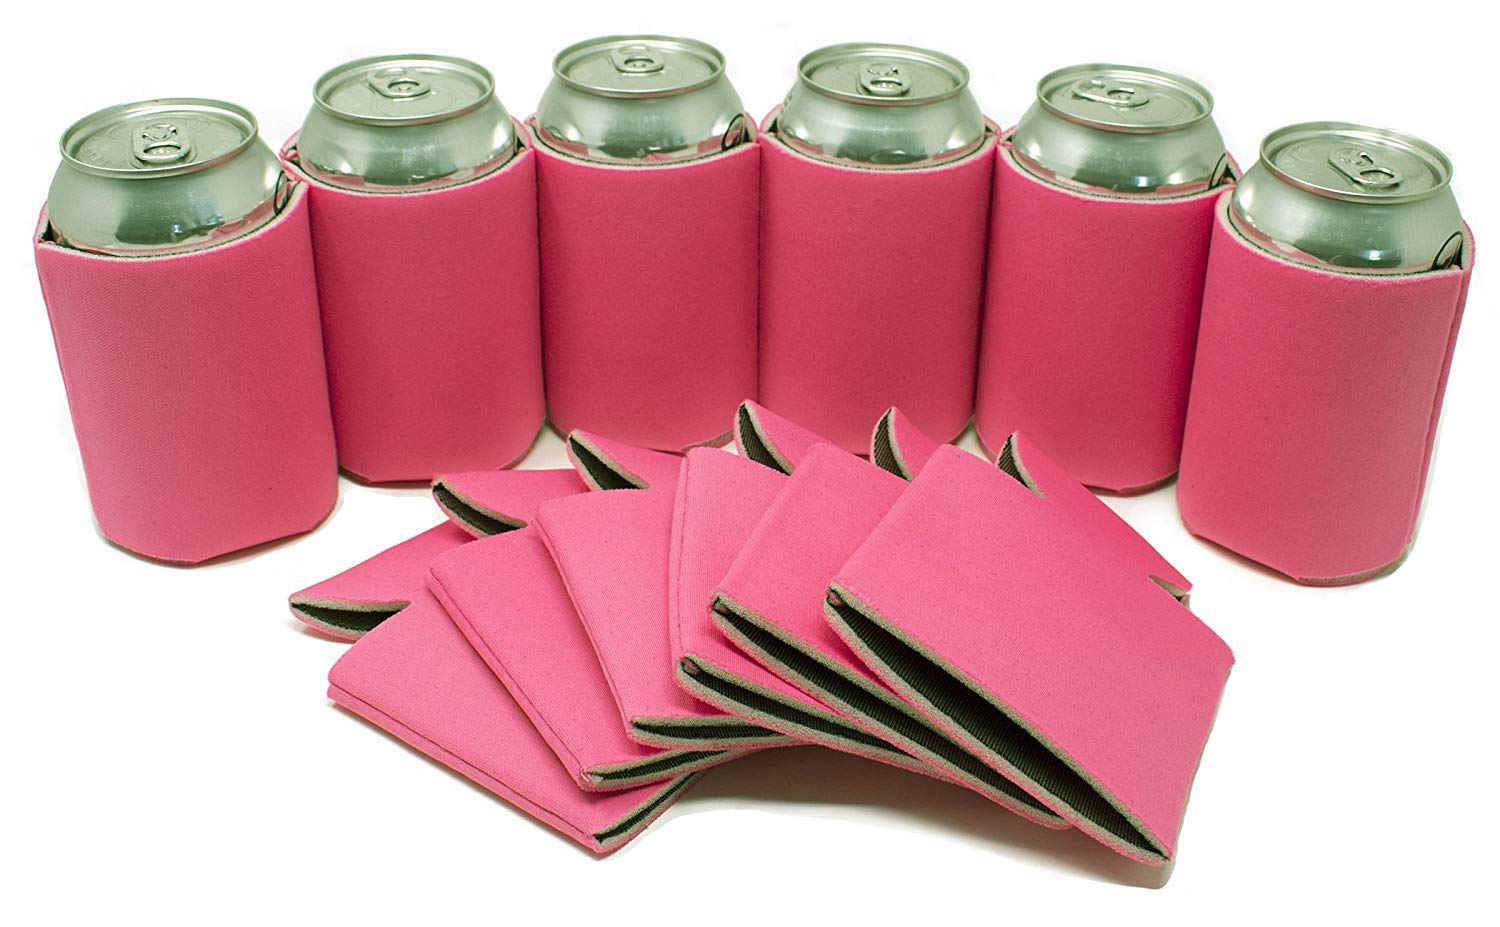 TahoeBay 12 Blank Beer Can Coolers, Plain Bulk Collapsible Soda Cover Coolies, DIY Personalized Sublimation Sleeves for Weddings, Bachelorette Parties, Funny HTV Party Favors (Hot Pink, 12)